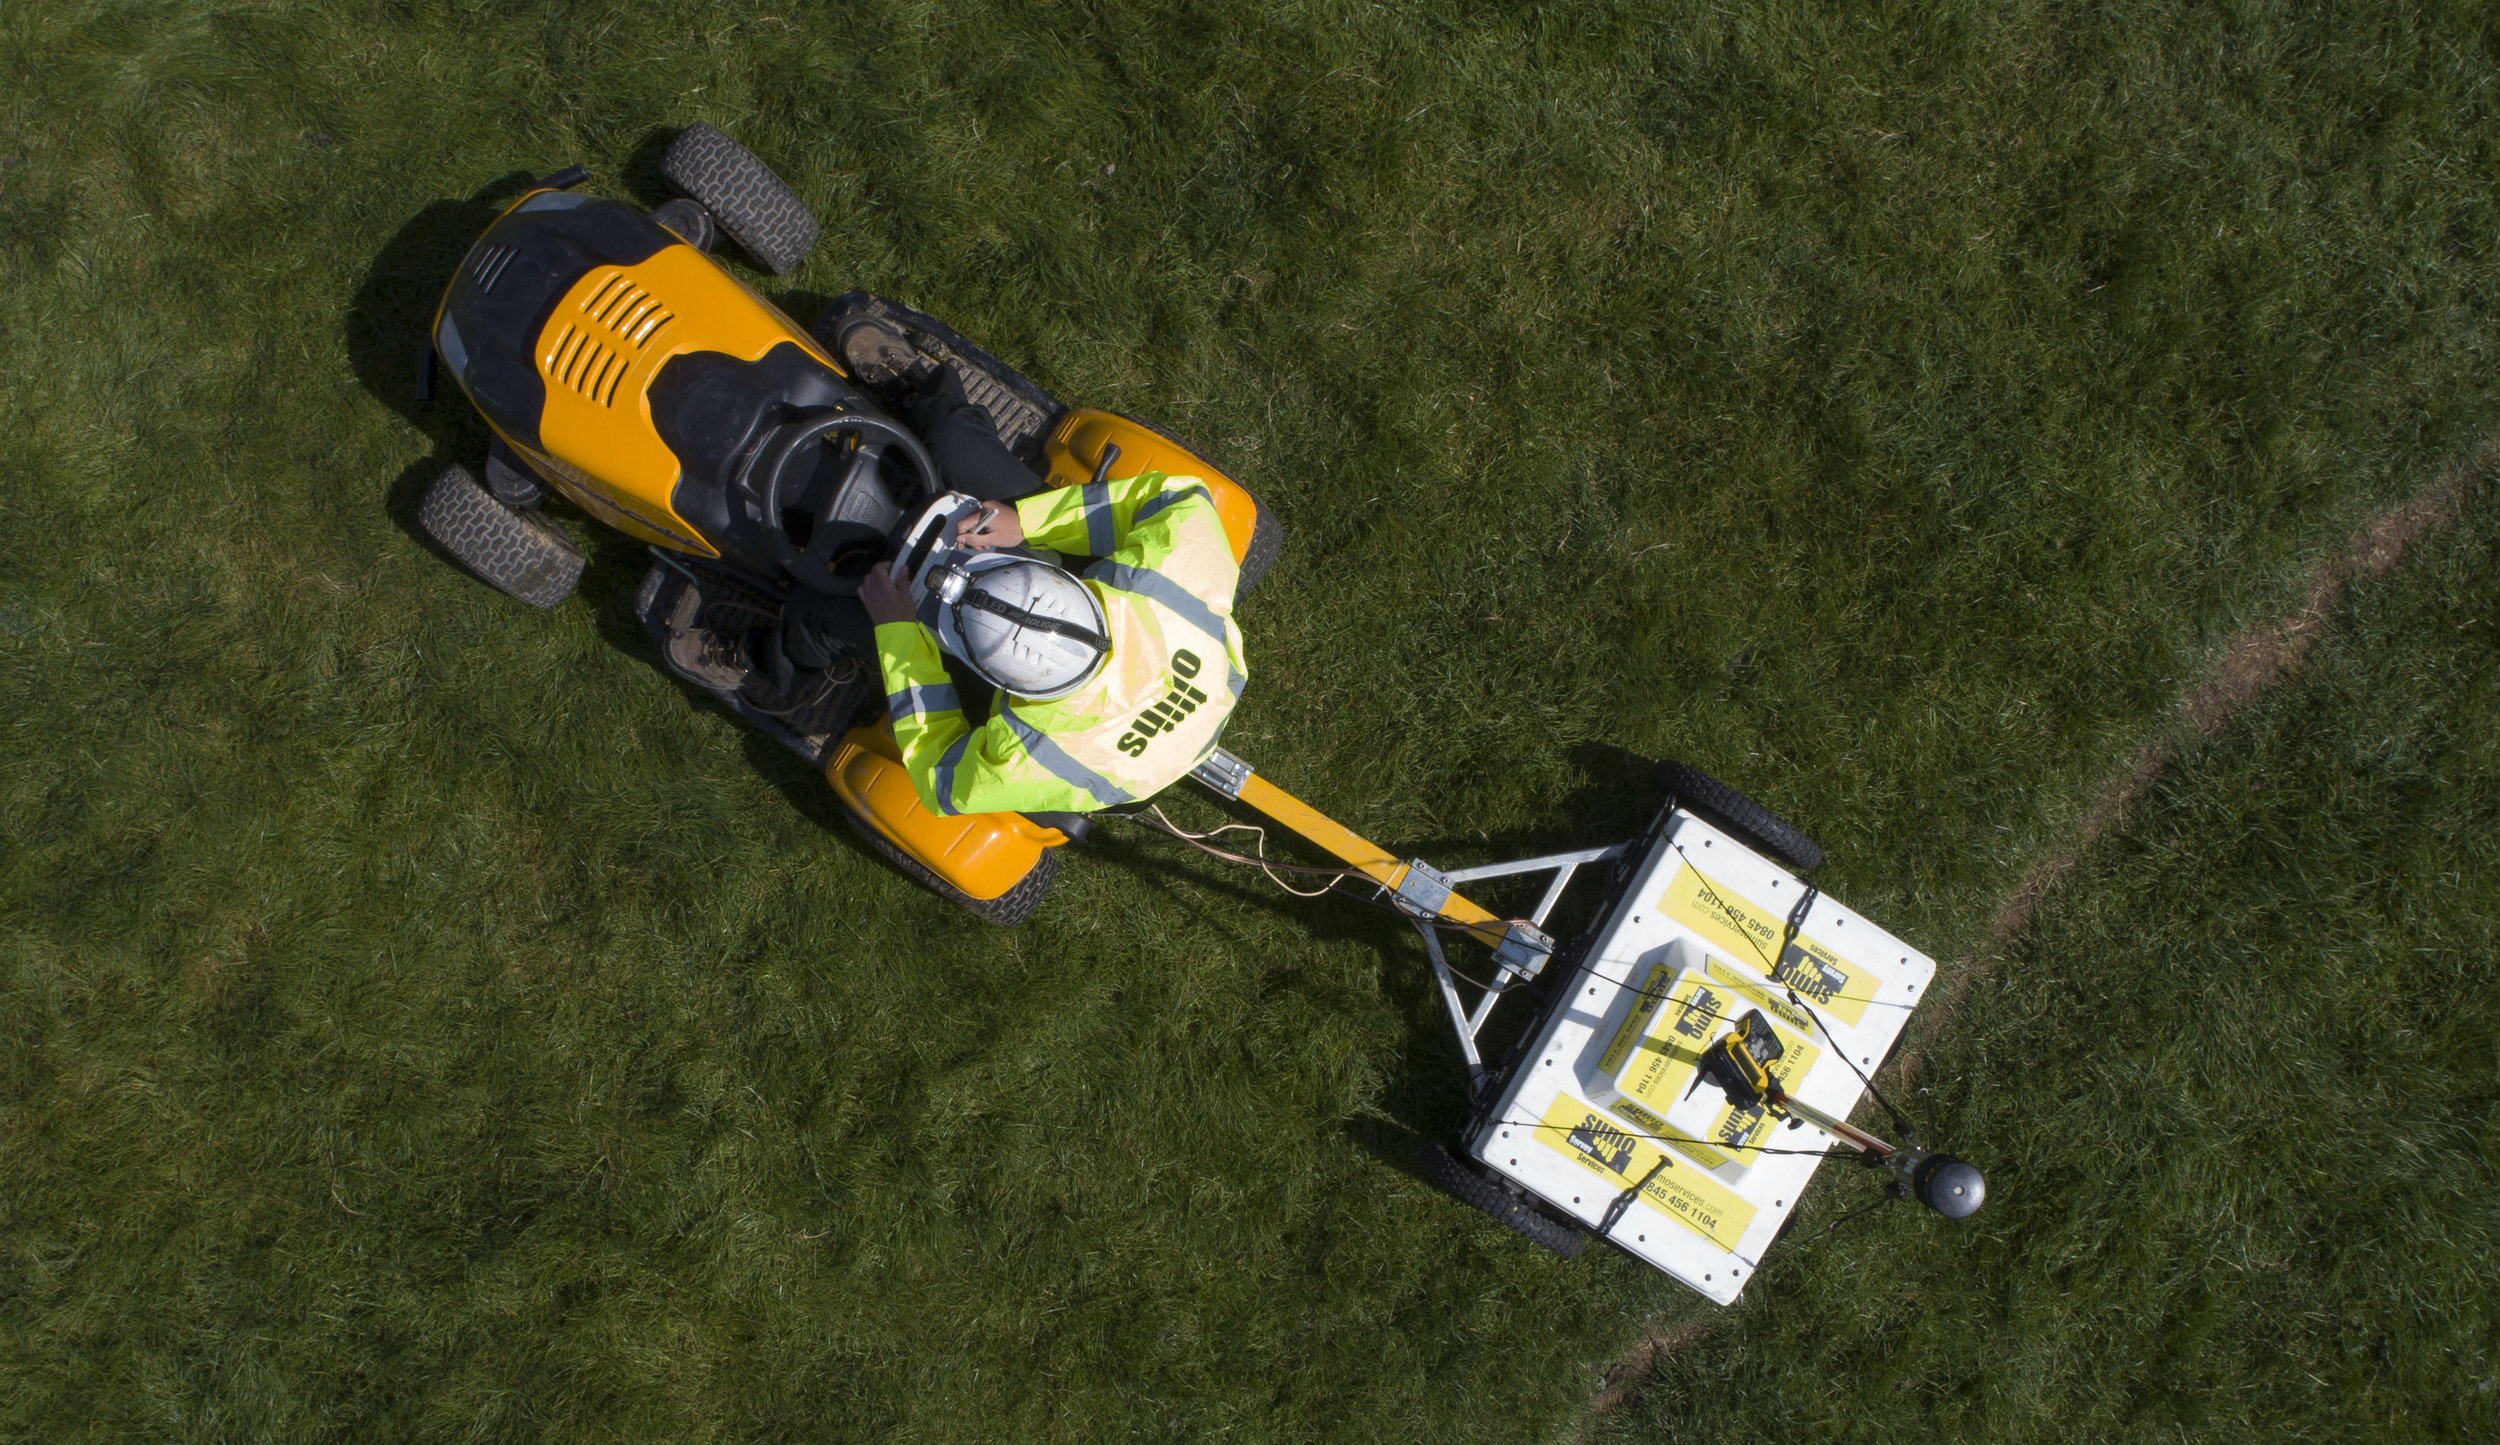 This photo shows the High-Density Ground Penetrating Radar equipment that SUMO utilises.